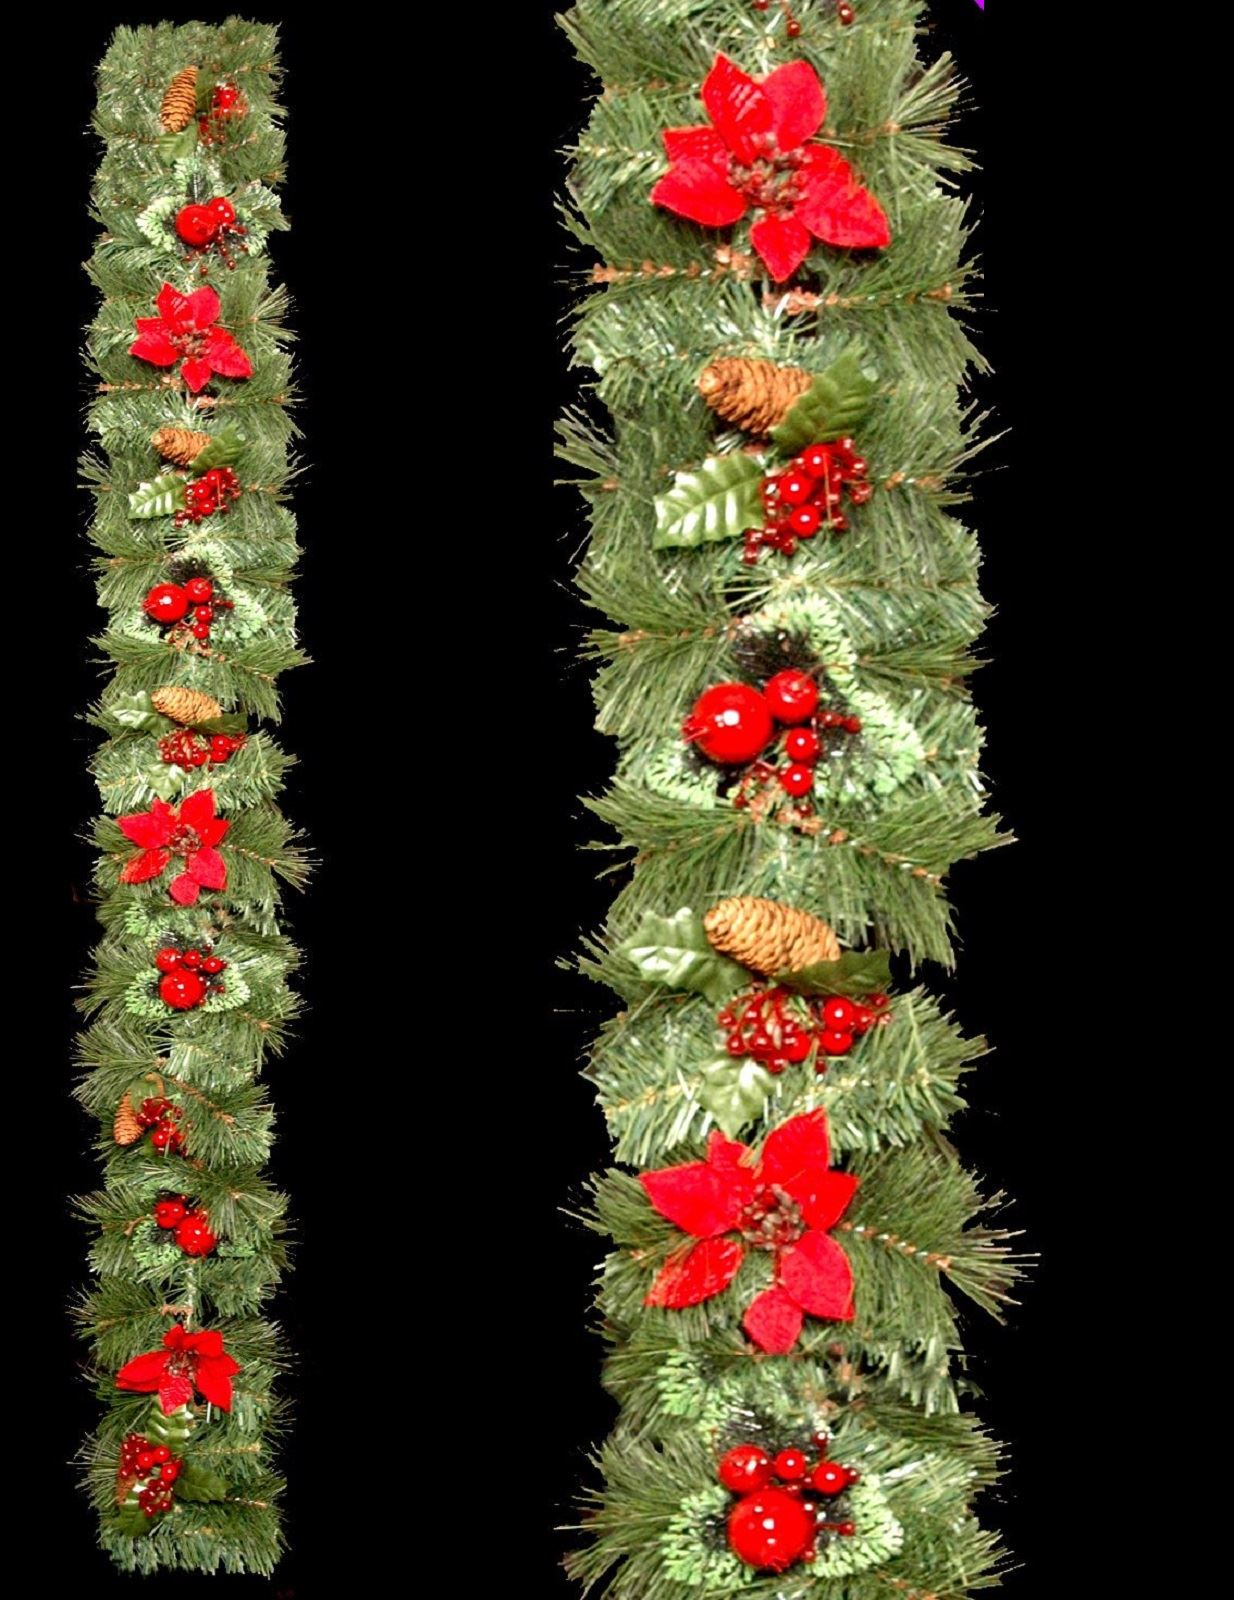 Ft beautiful thick green tinsel garland with red